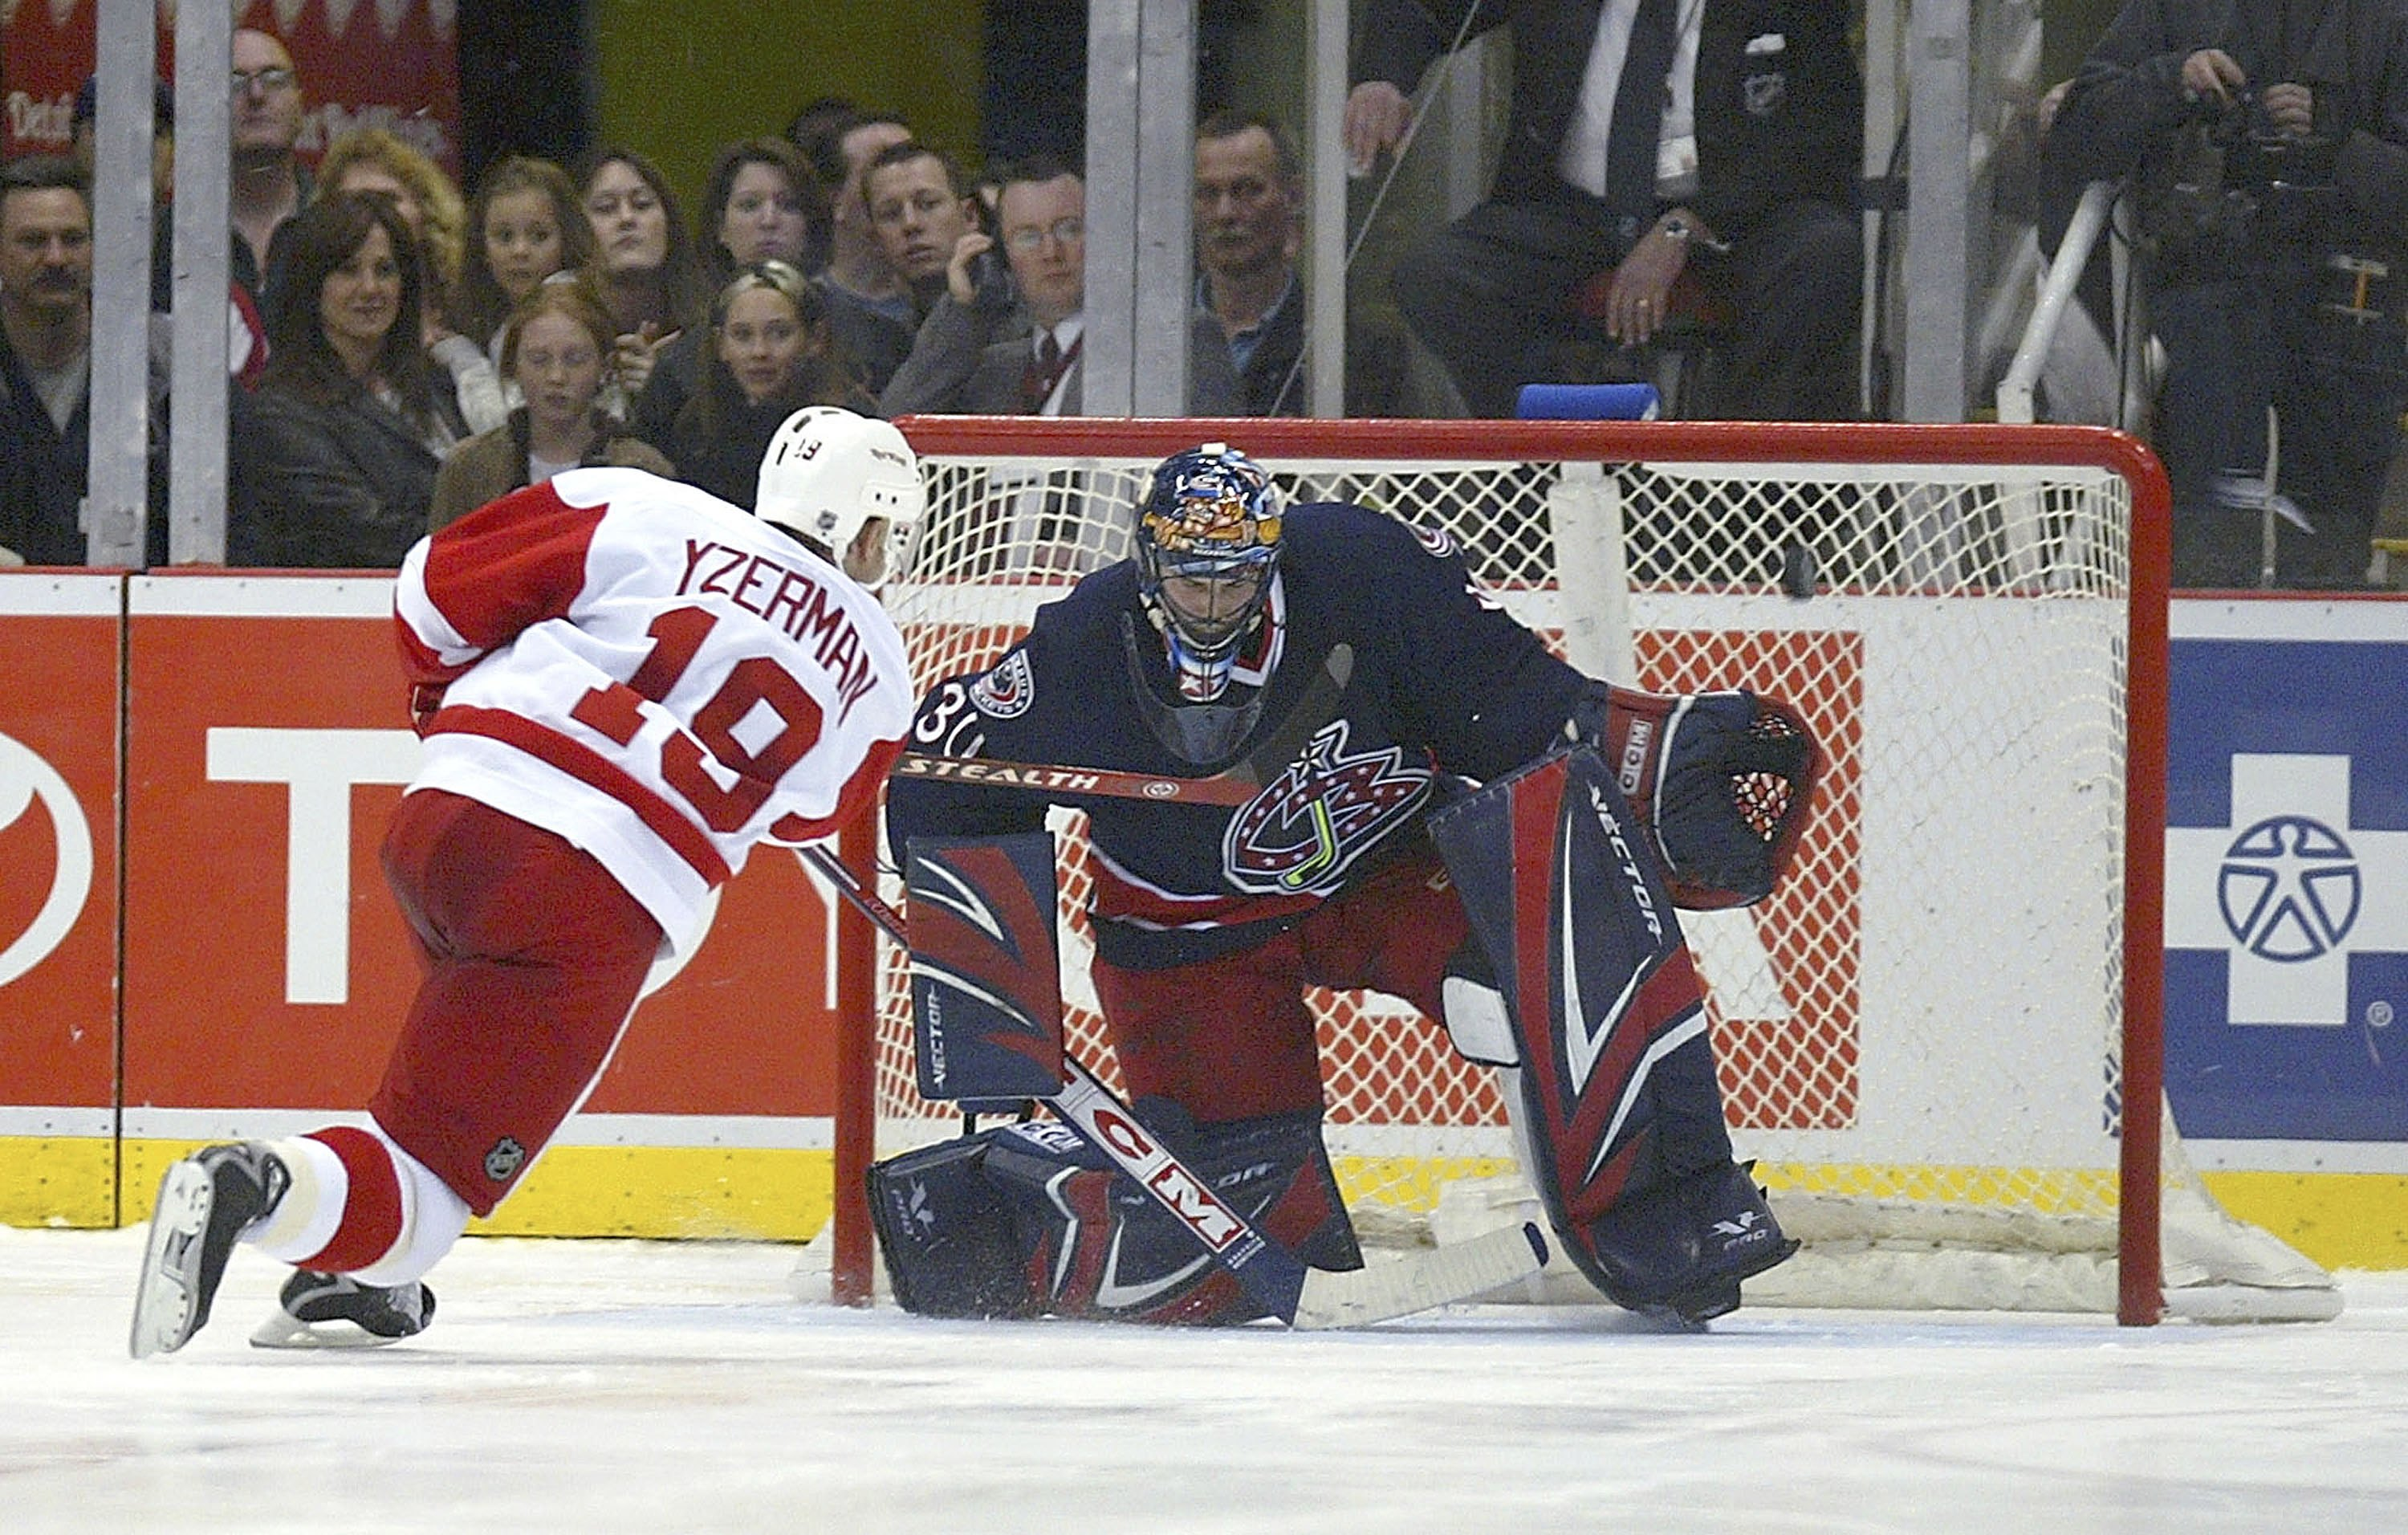 DETROIT - APRIL 7:  Steve Yzerman #19 of the Detroit Red Wings rings a shot off the crossbar against Marc Denis #30 of the Columbus Blue Jackets during their shootout at Joe Louis Arena on April 7, 2006 in Detroit, Michigan. The Red Wings defeated the Blu